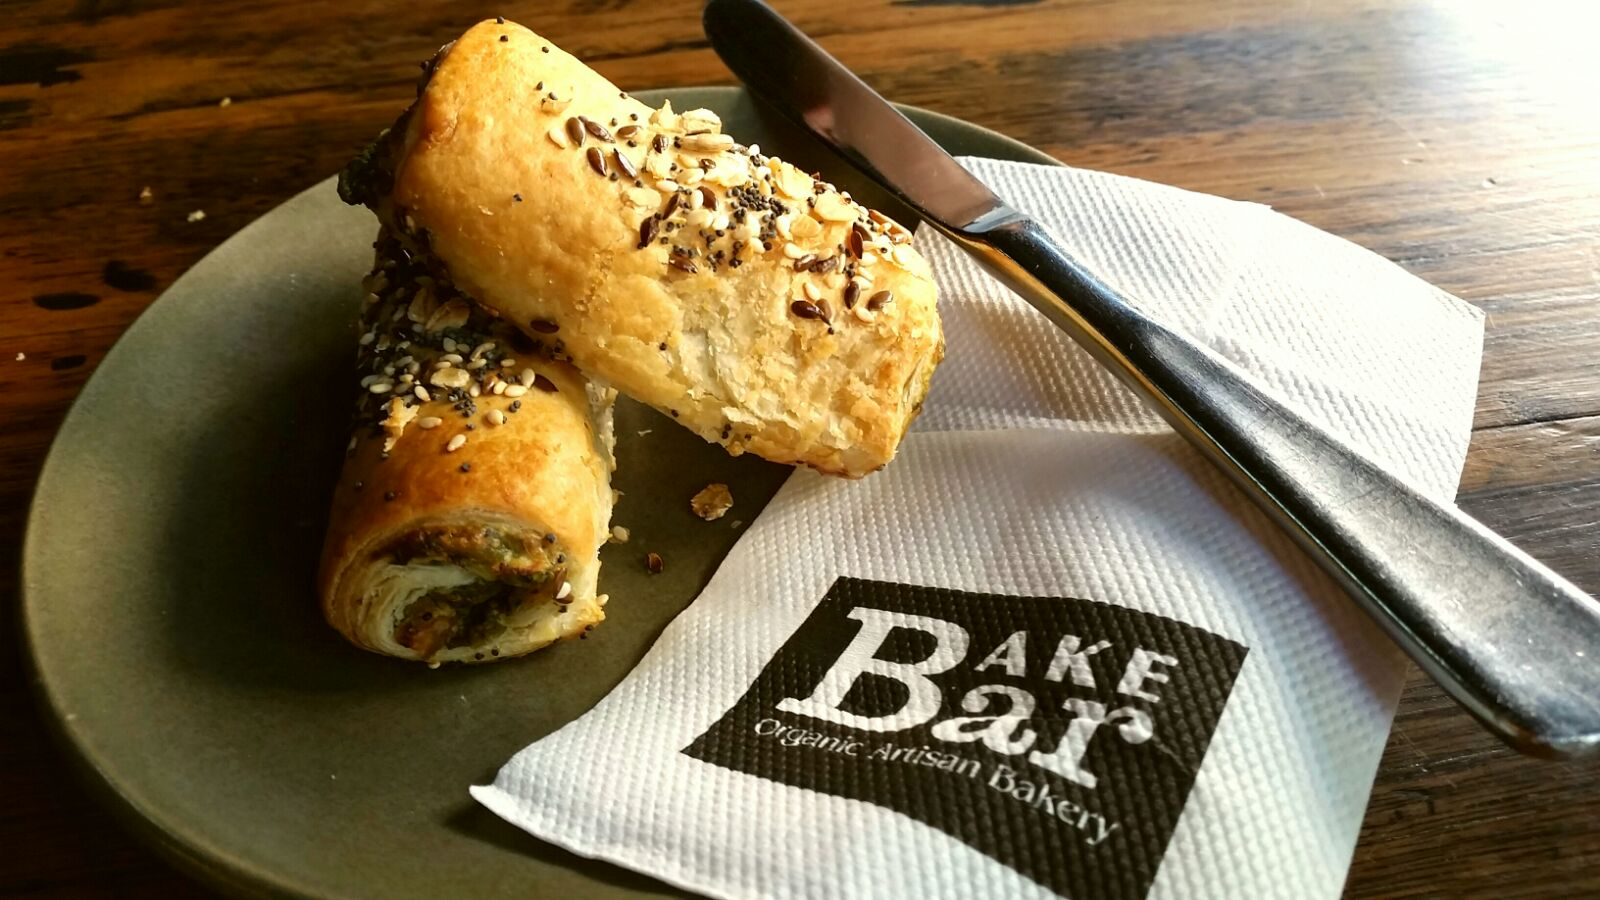 Weekend food escapes bake bar double bay for J s food bar 01708